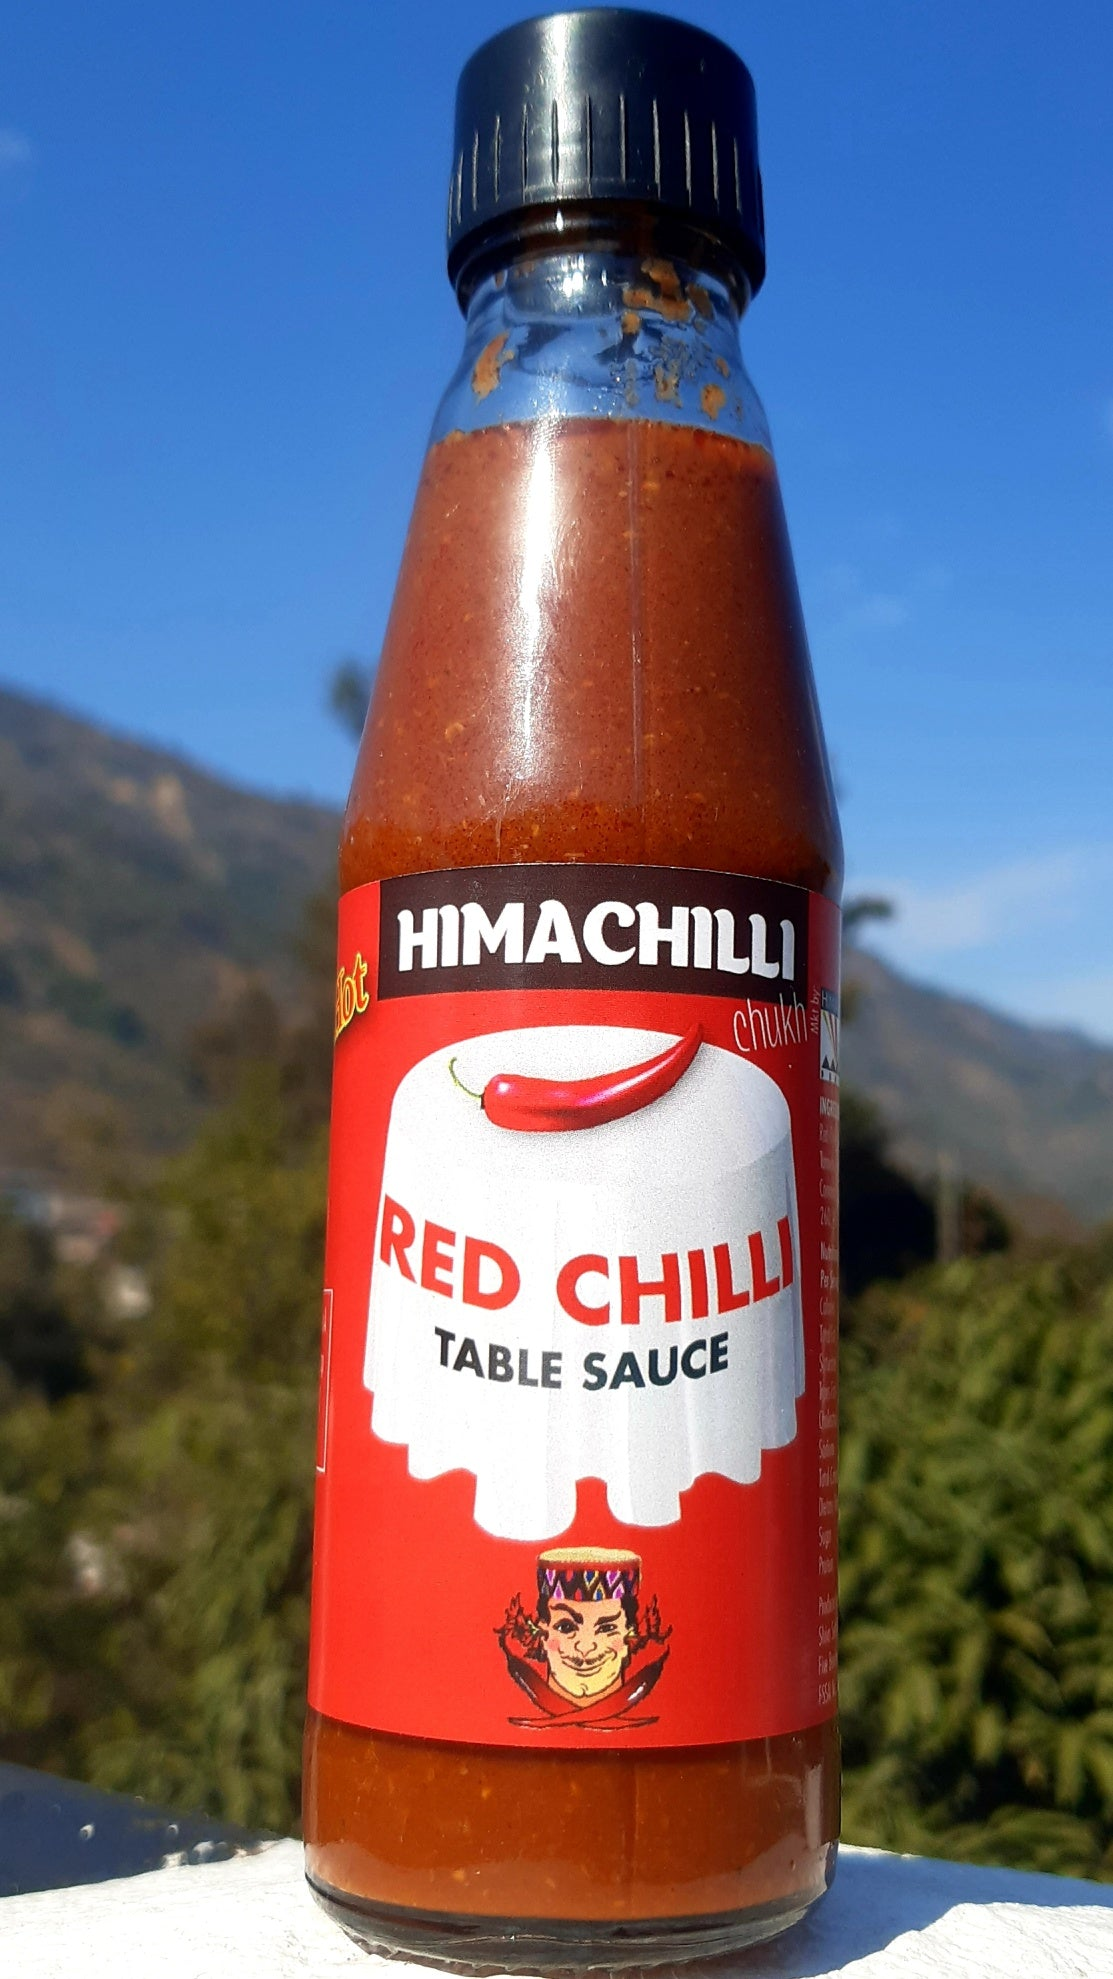 Himachilli. Red Chilli Sauce. Hot Sauce, Indian Spices, Smokey Chilli Sauce